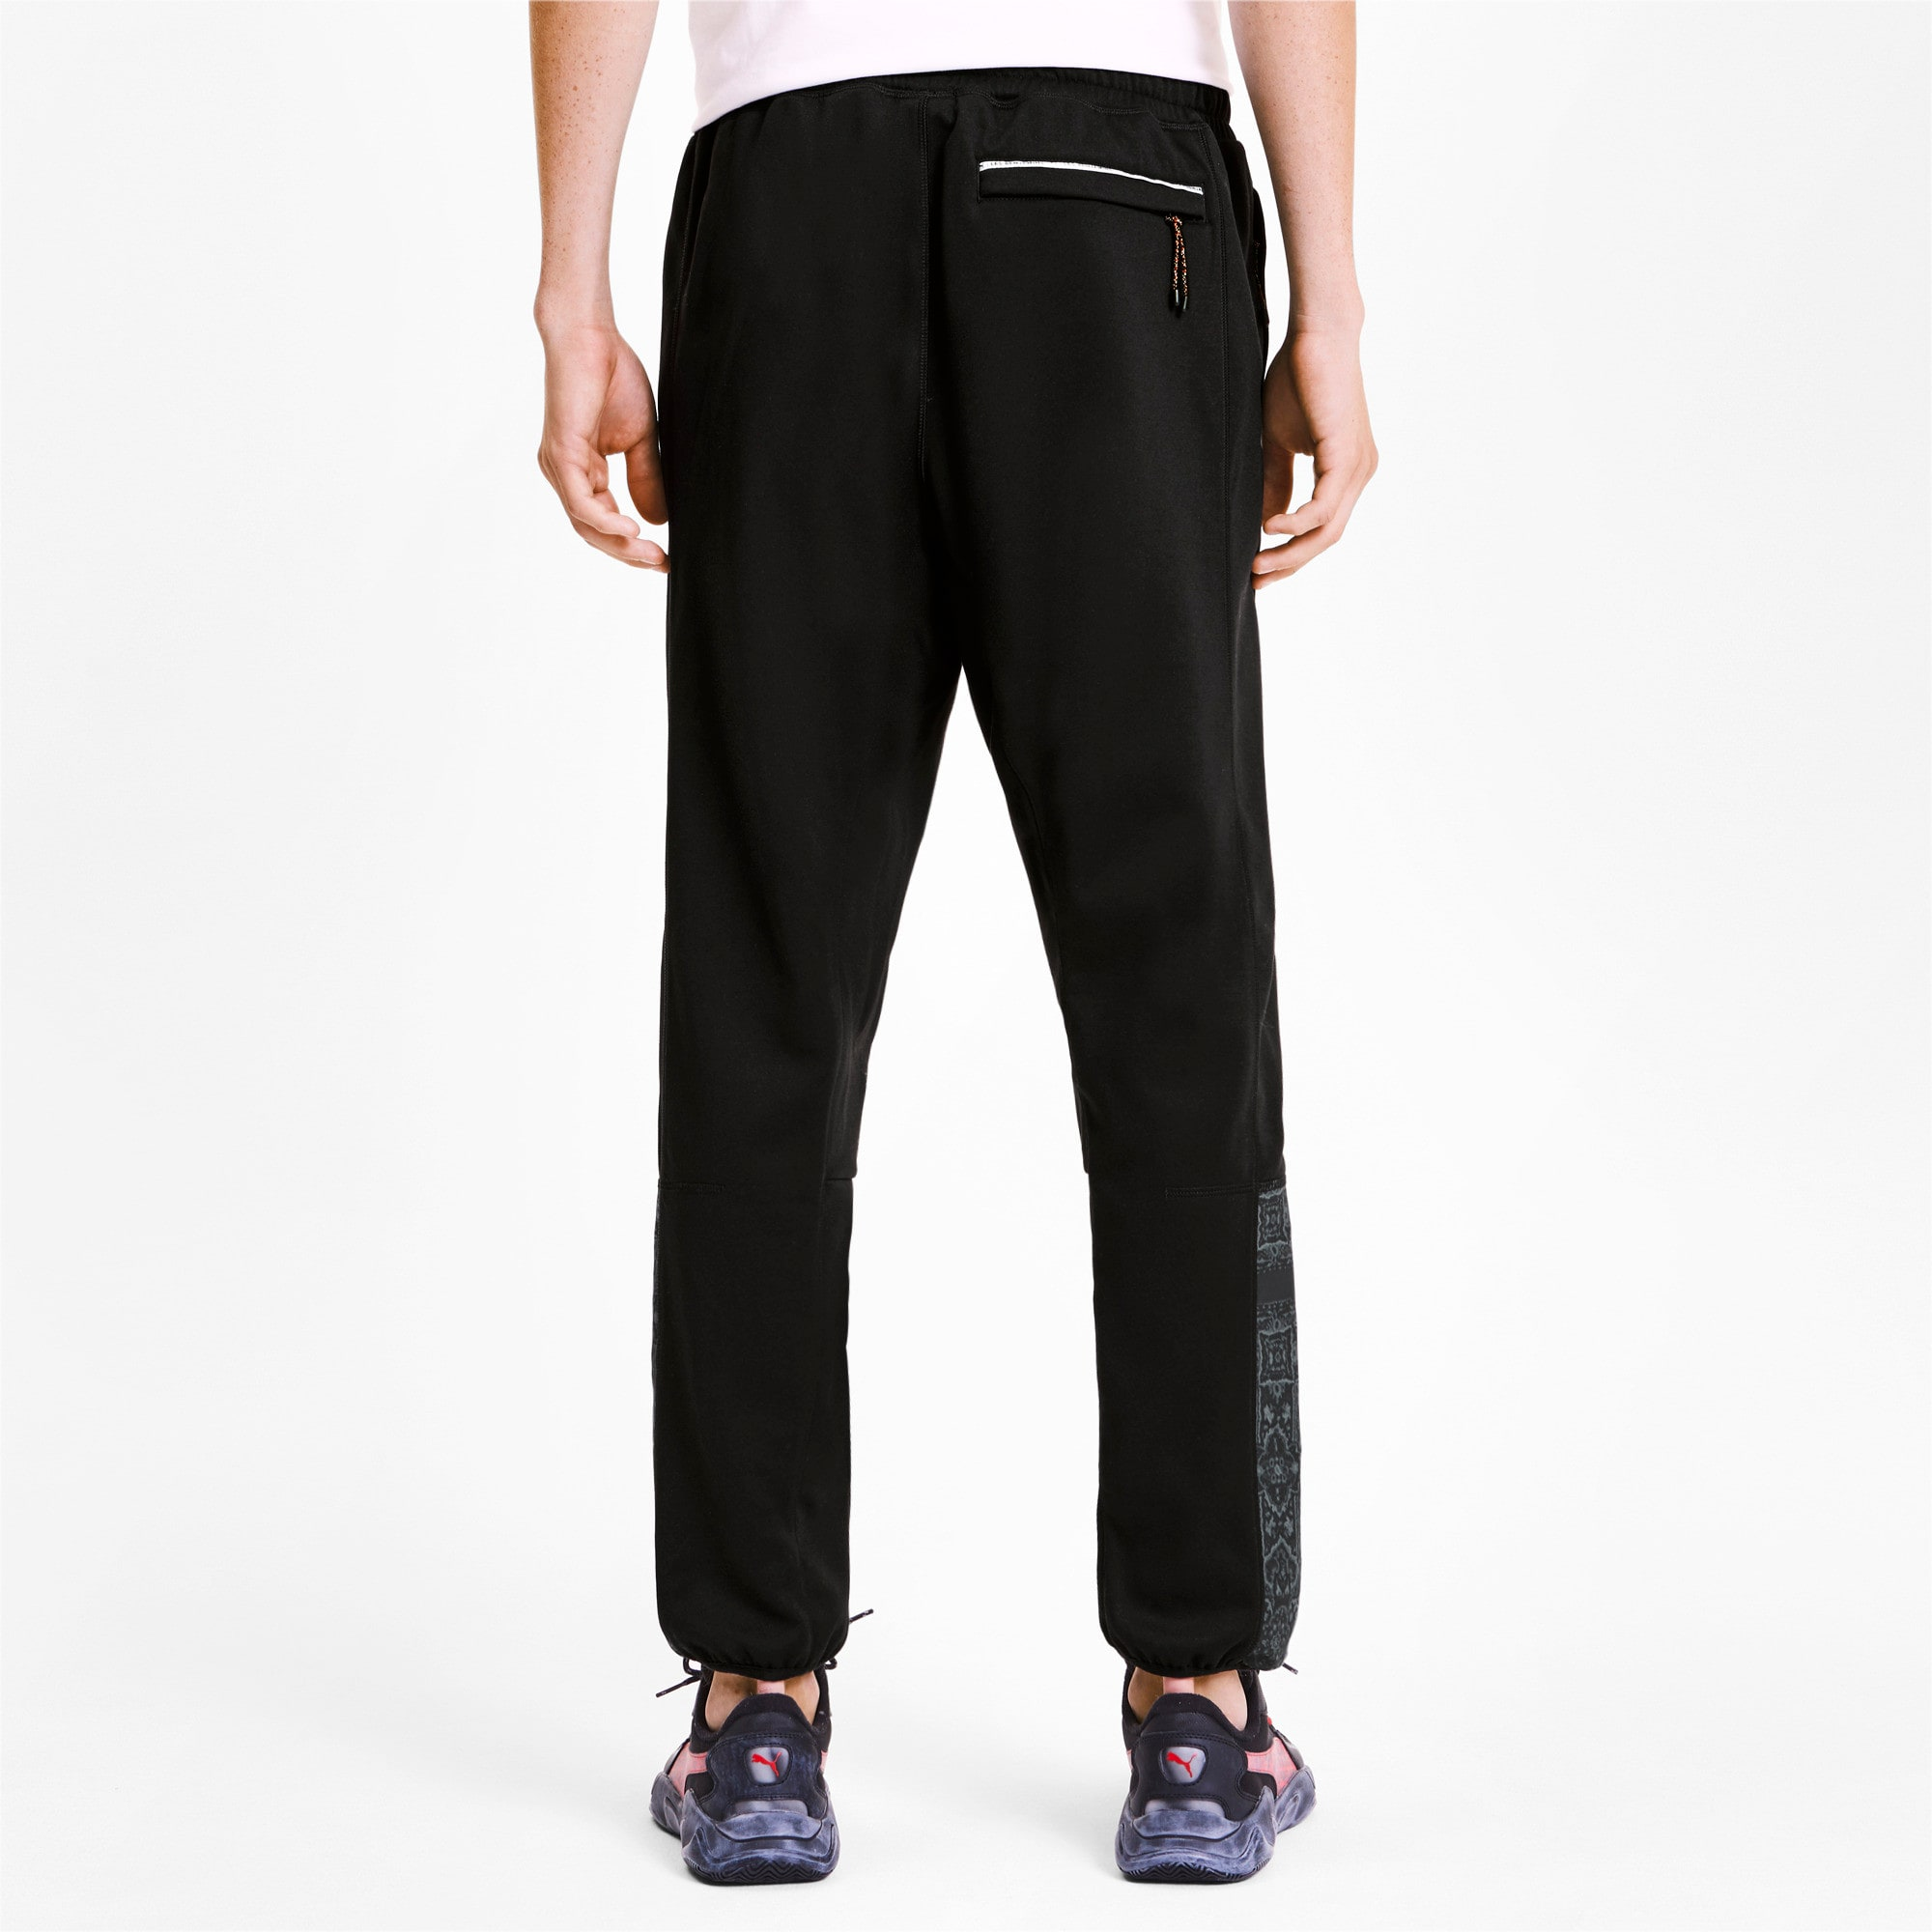 Thumbnail 3 of PUMA x LES BENJAMINS Woven Men's Track Pants, Puma Black, medium